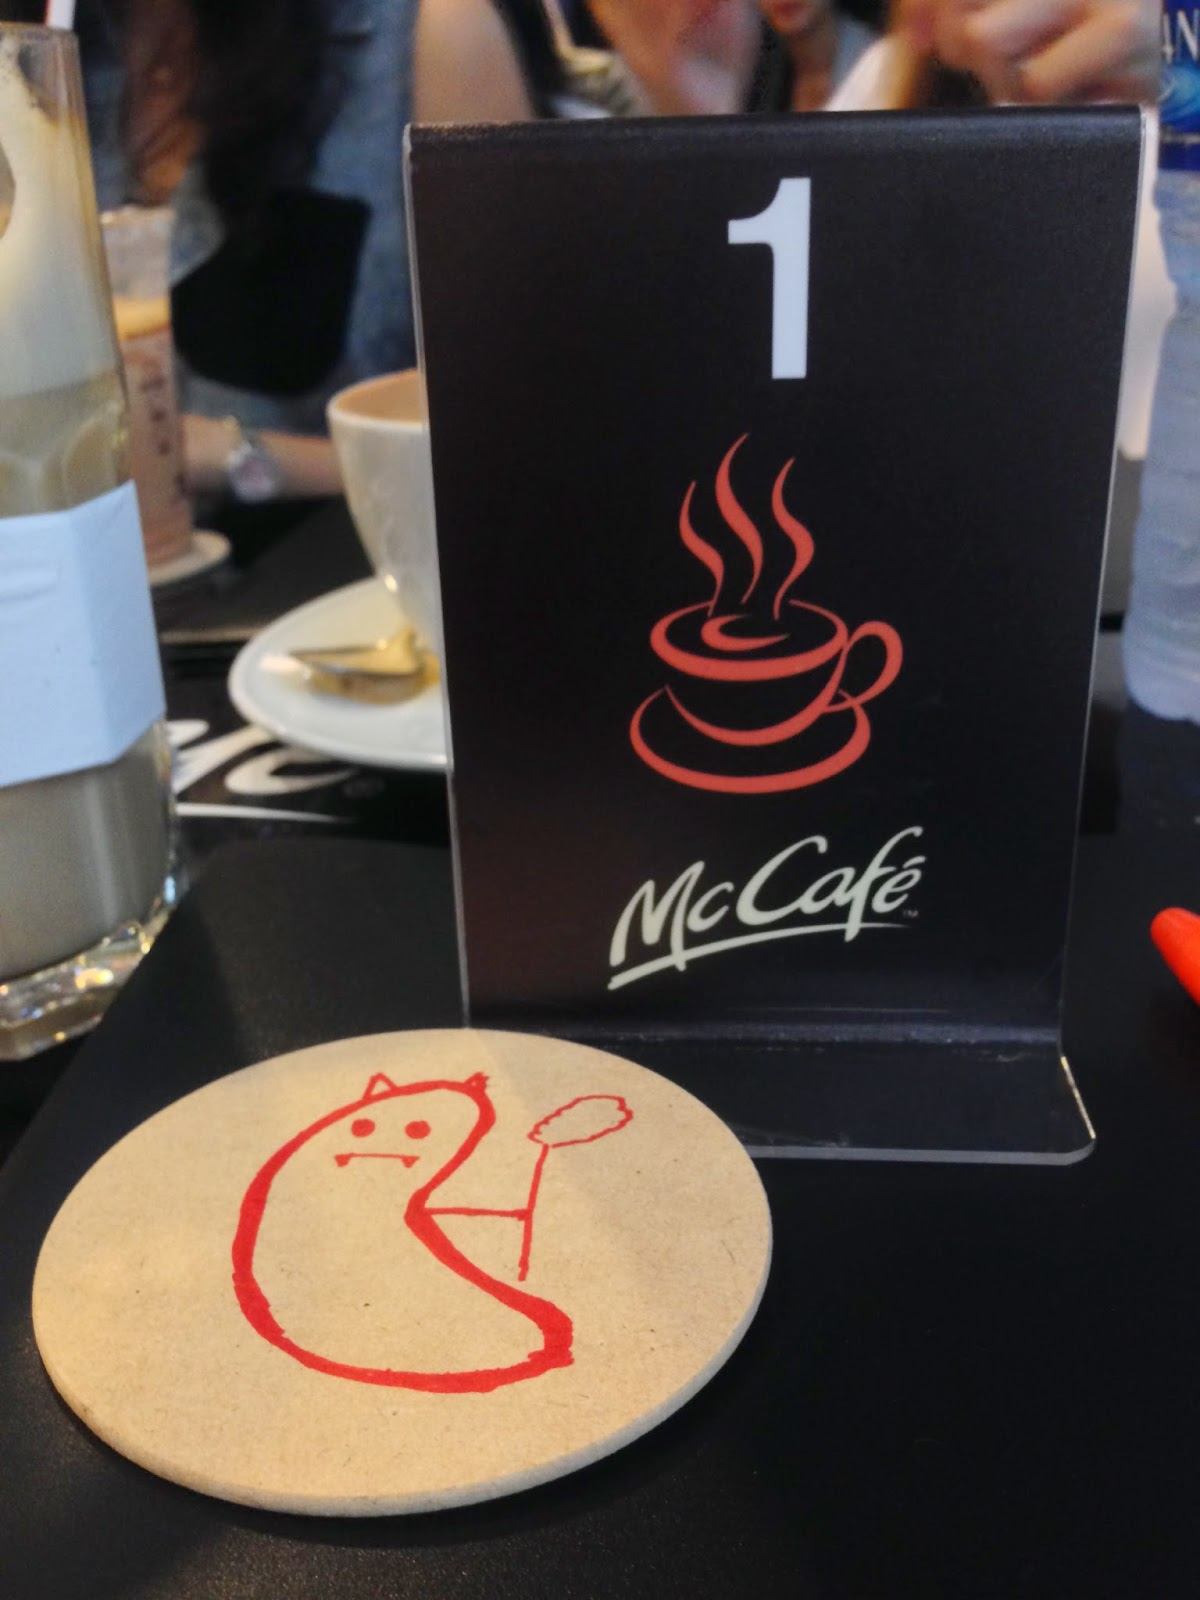 Evilbean with McCafe